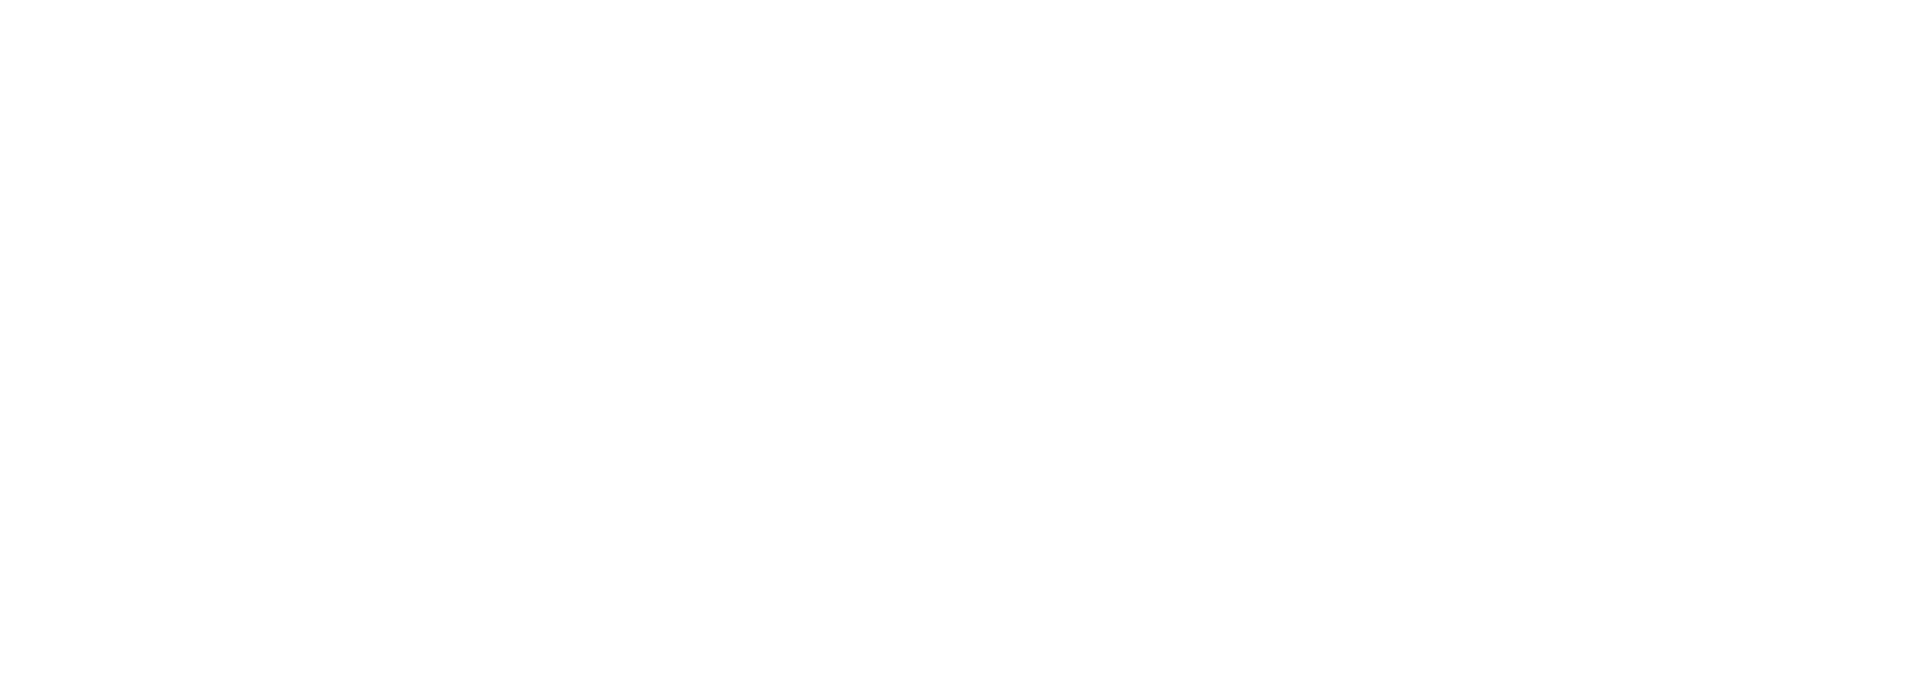 Die modernste Form von Connectivity - Mercedes me connect bei der RKG